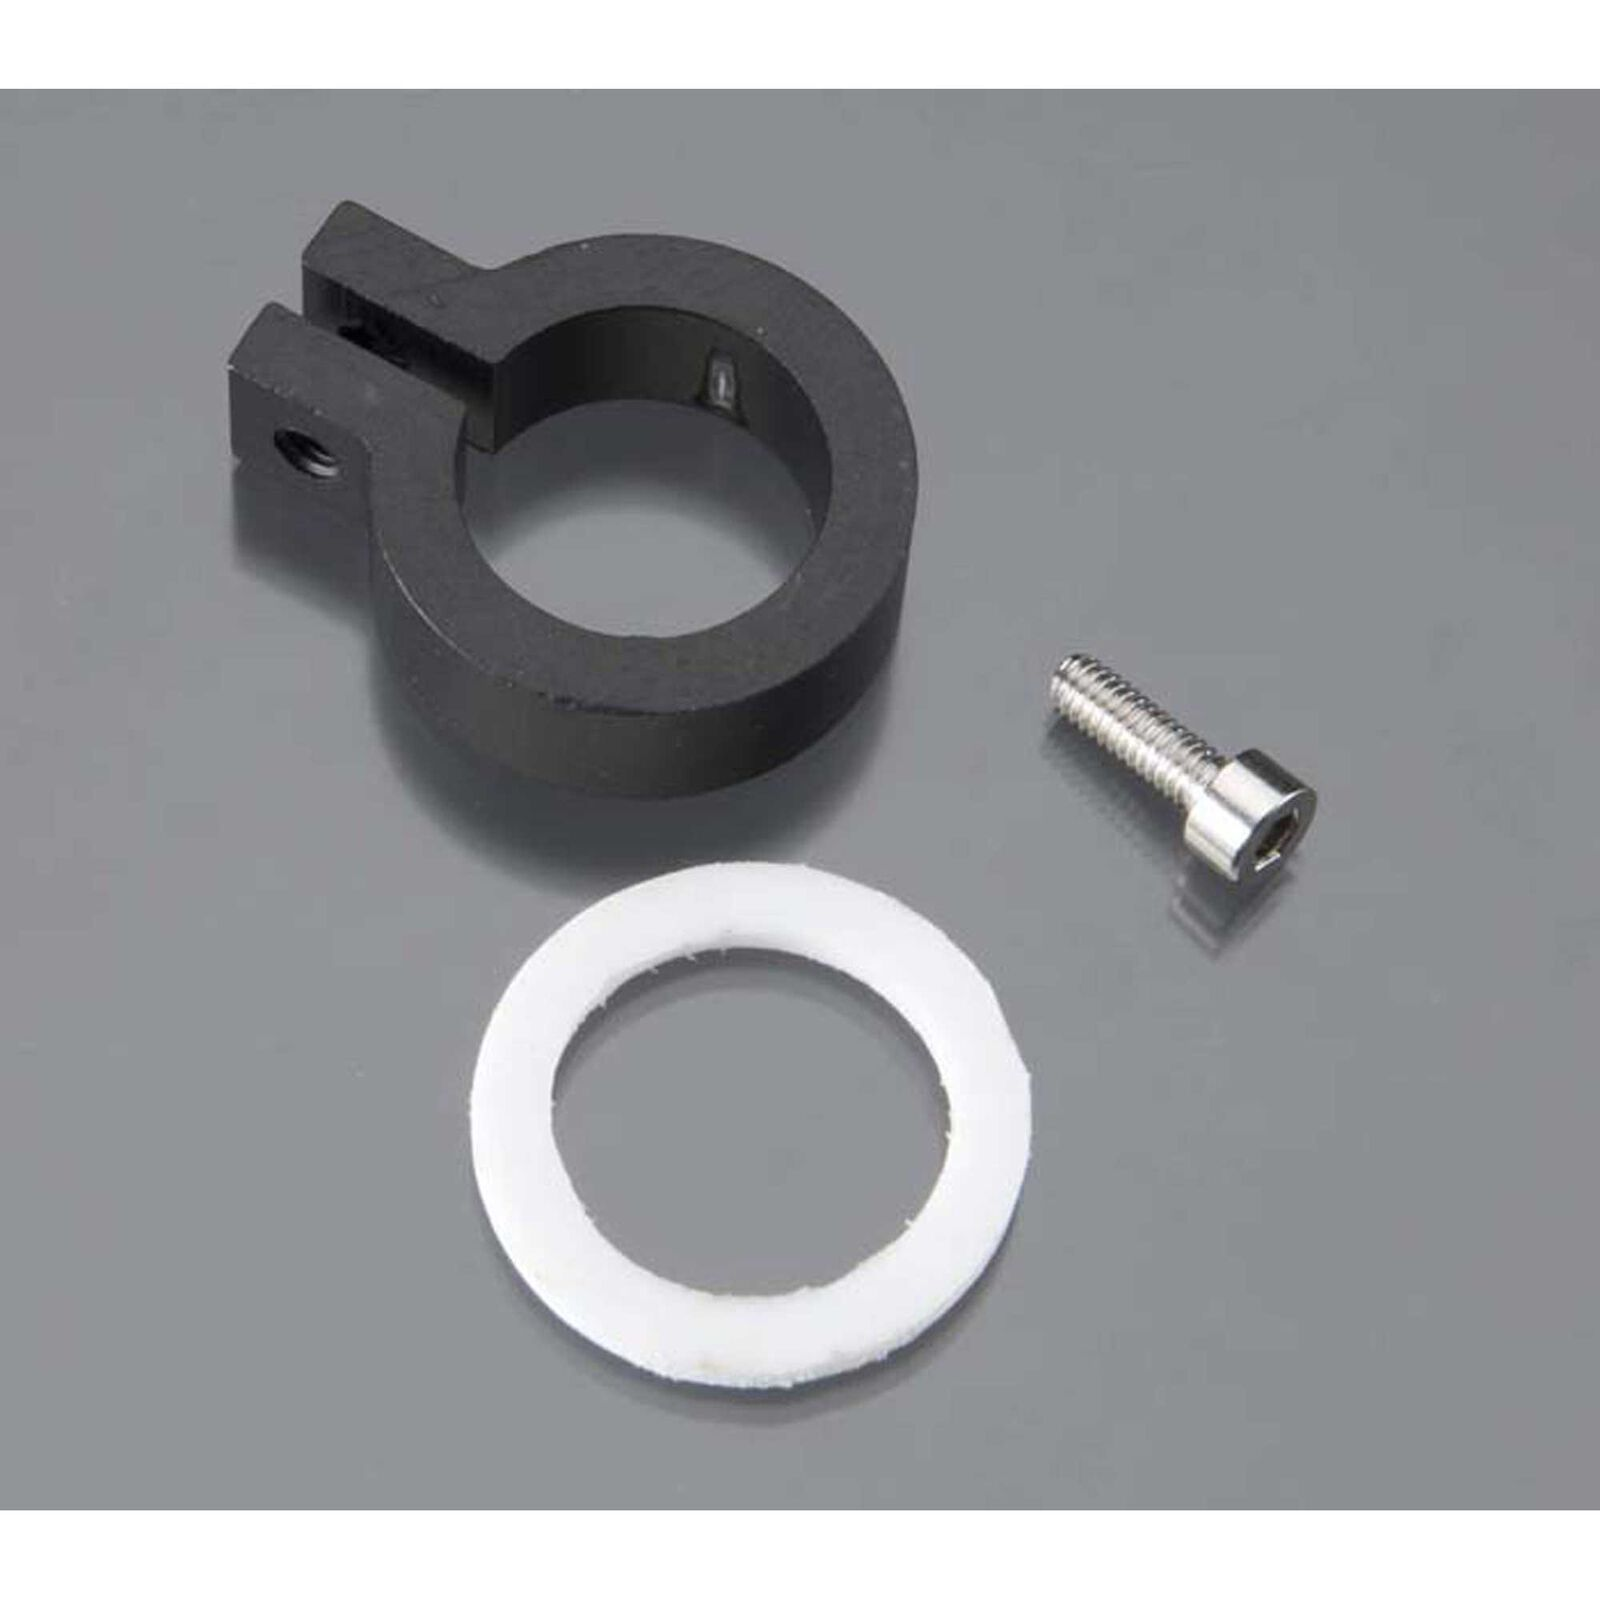 Pipe Stop Washer: Rio 51